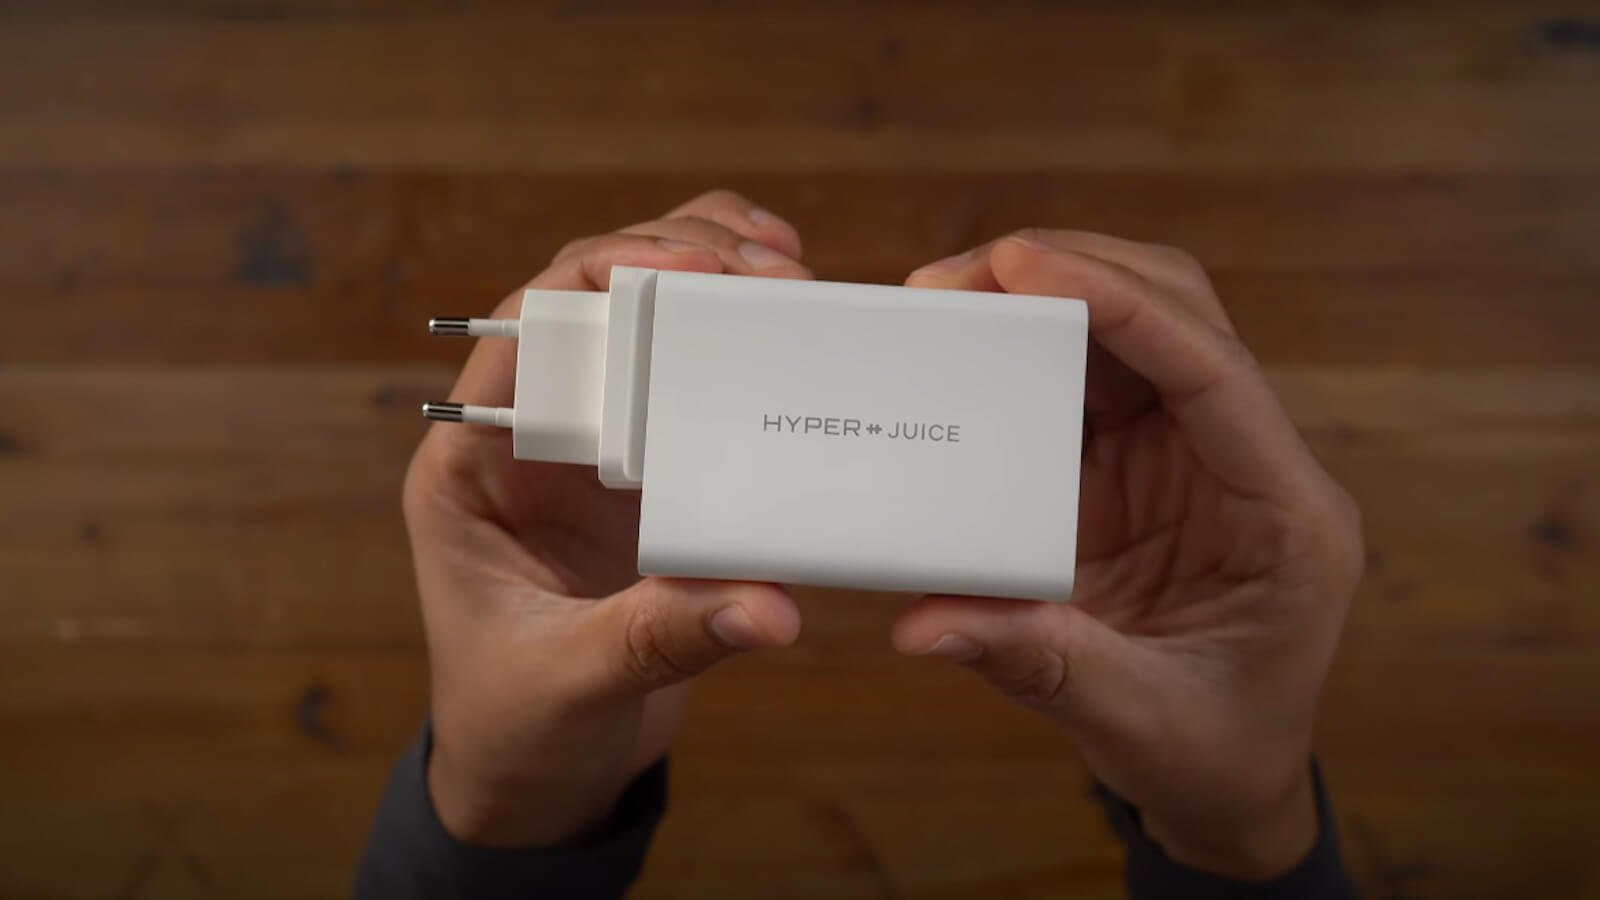 HYPER HyperJuice 100W GaN Charger powers 4 devices simultaneously